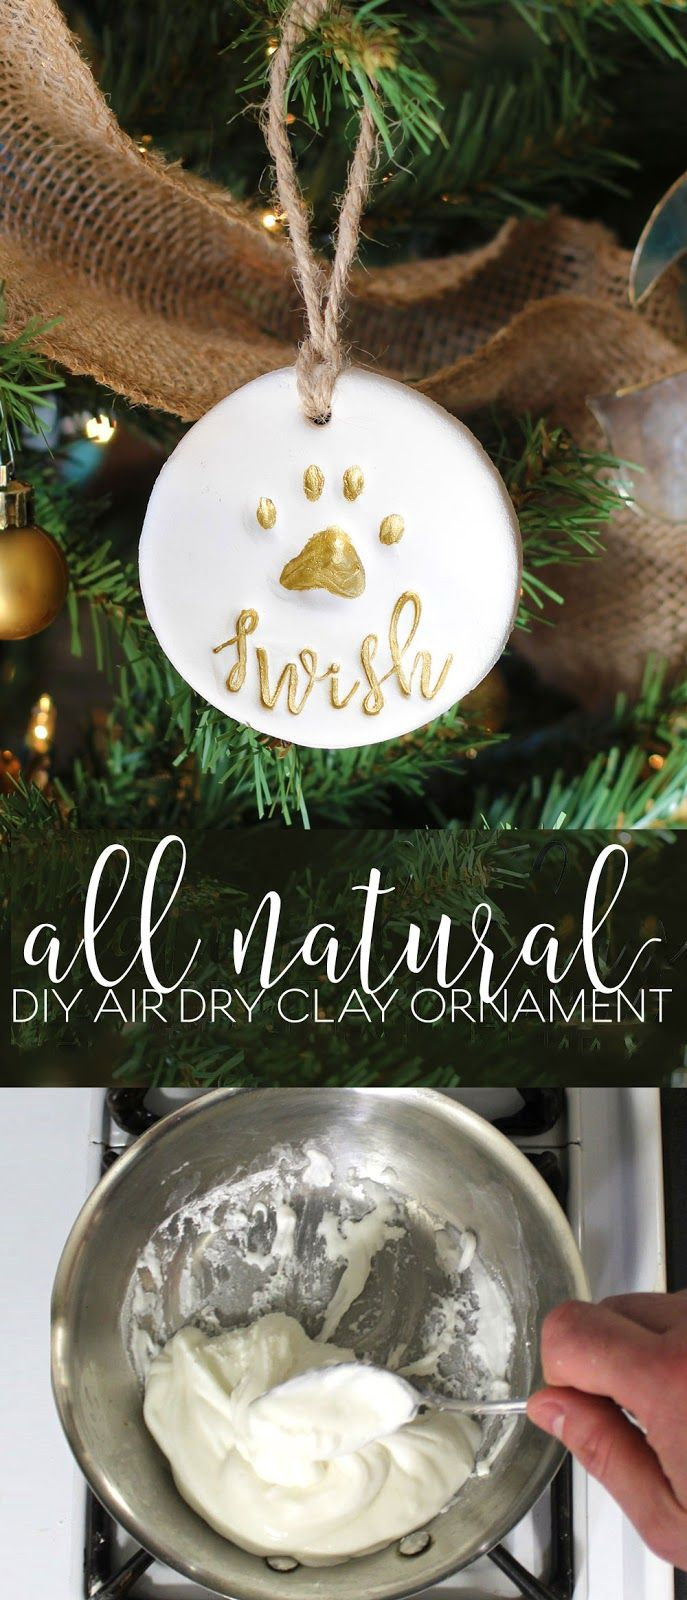 First apartment ornament - 365 Designs Pet Gift Basket With Personalized Natural Diy Air Dry Clay Paw Print Ornament